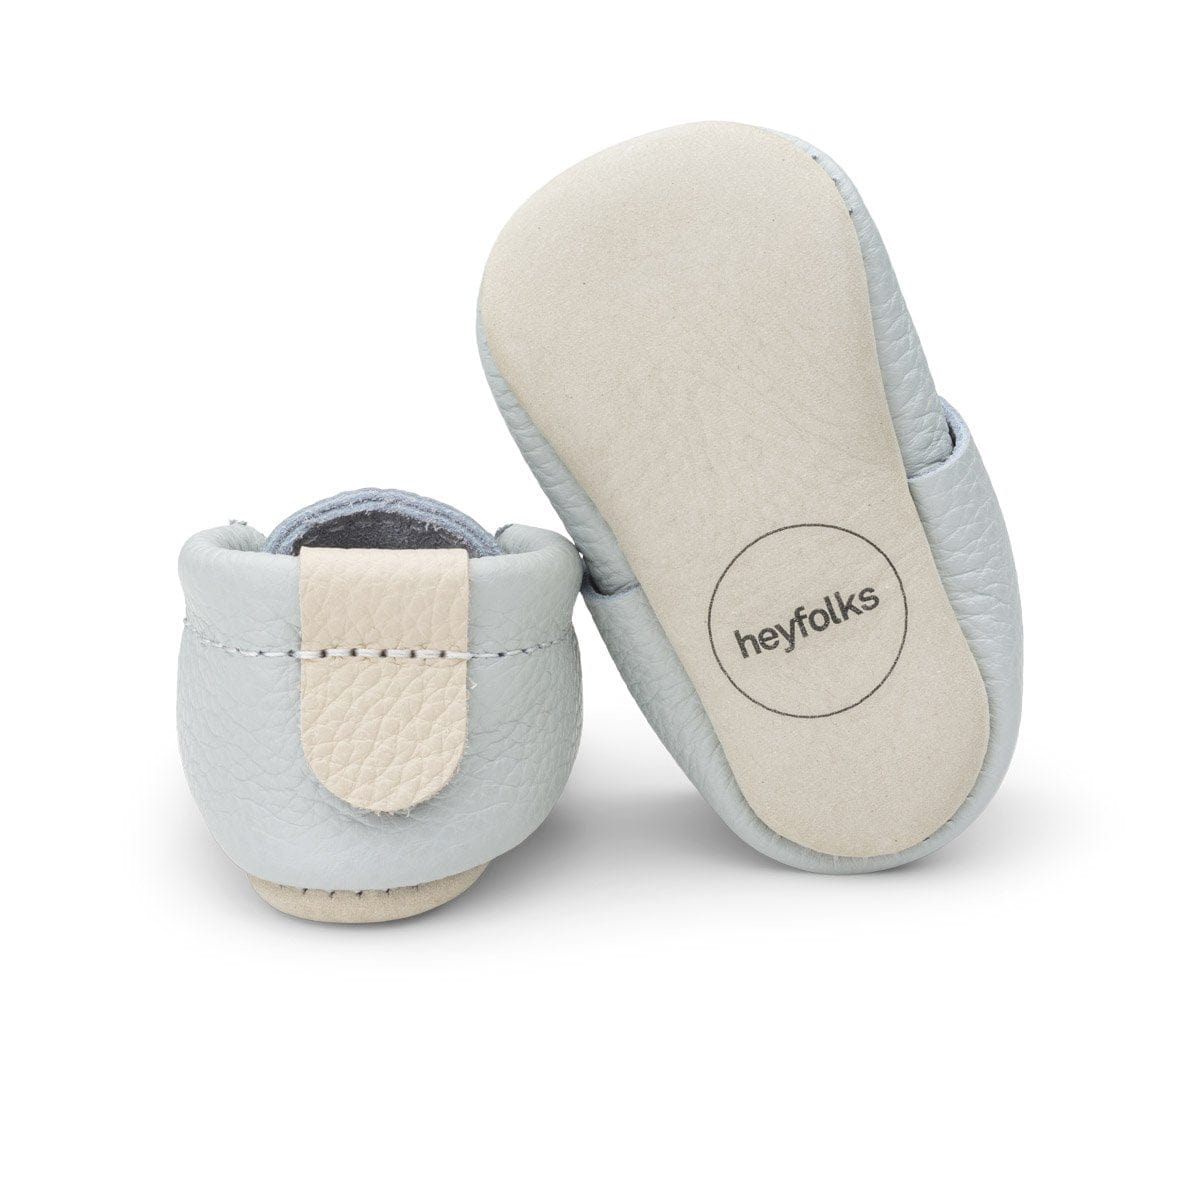 Heyfolks Newborn Soft Sole Shoe - Glacier